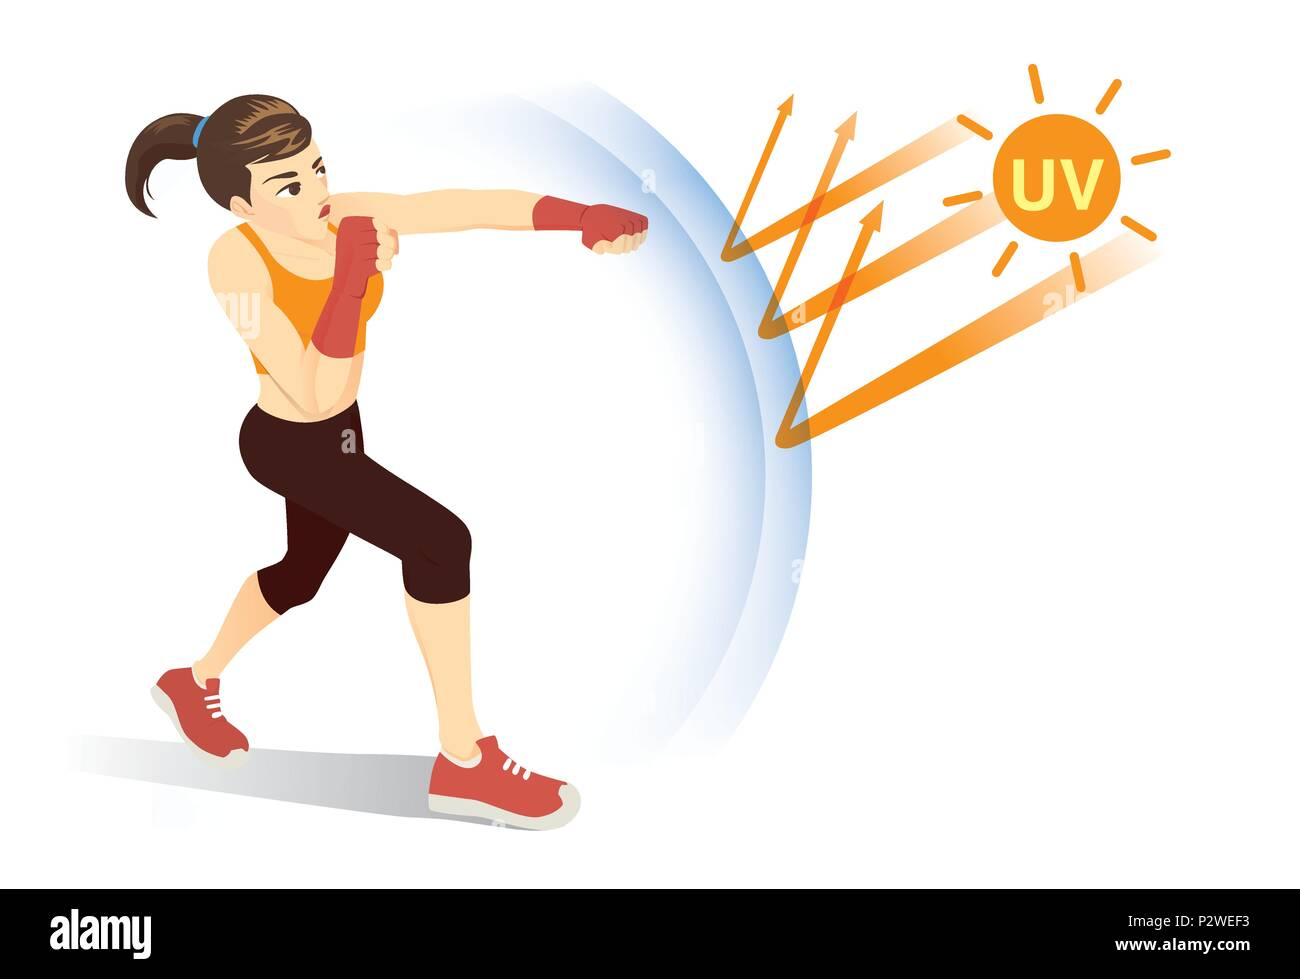 Healthy woman reflect UV ray from sunlight with punching. - Stock Vector